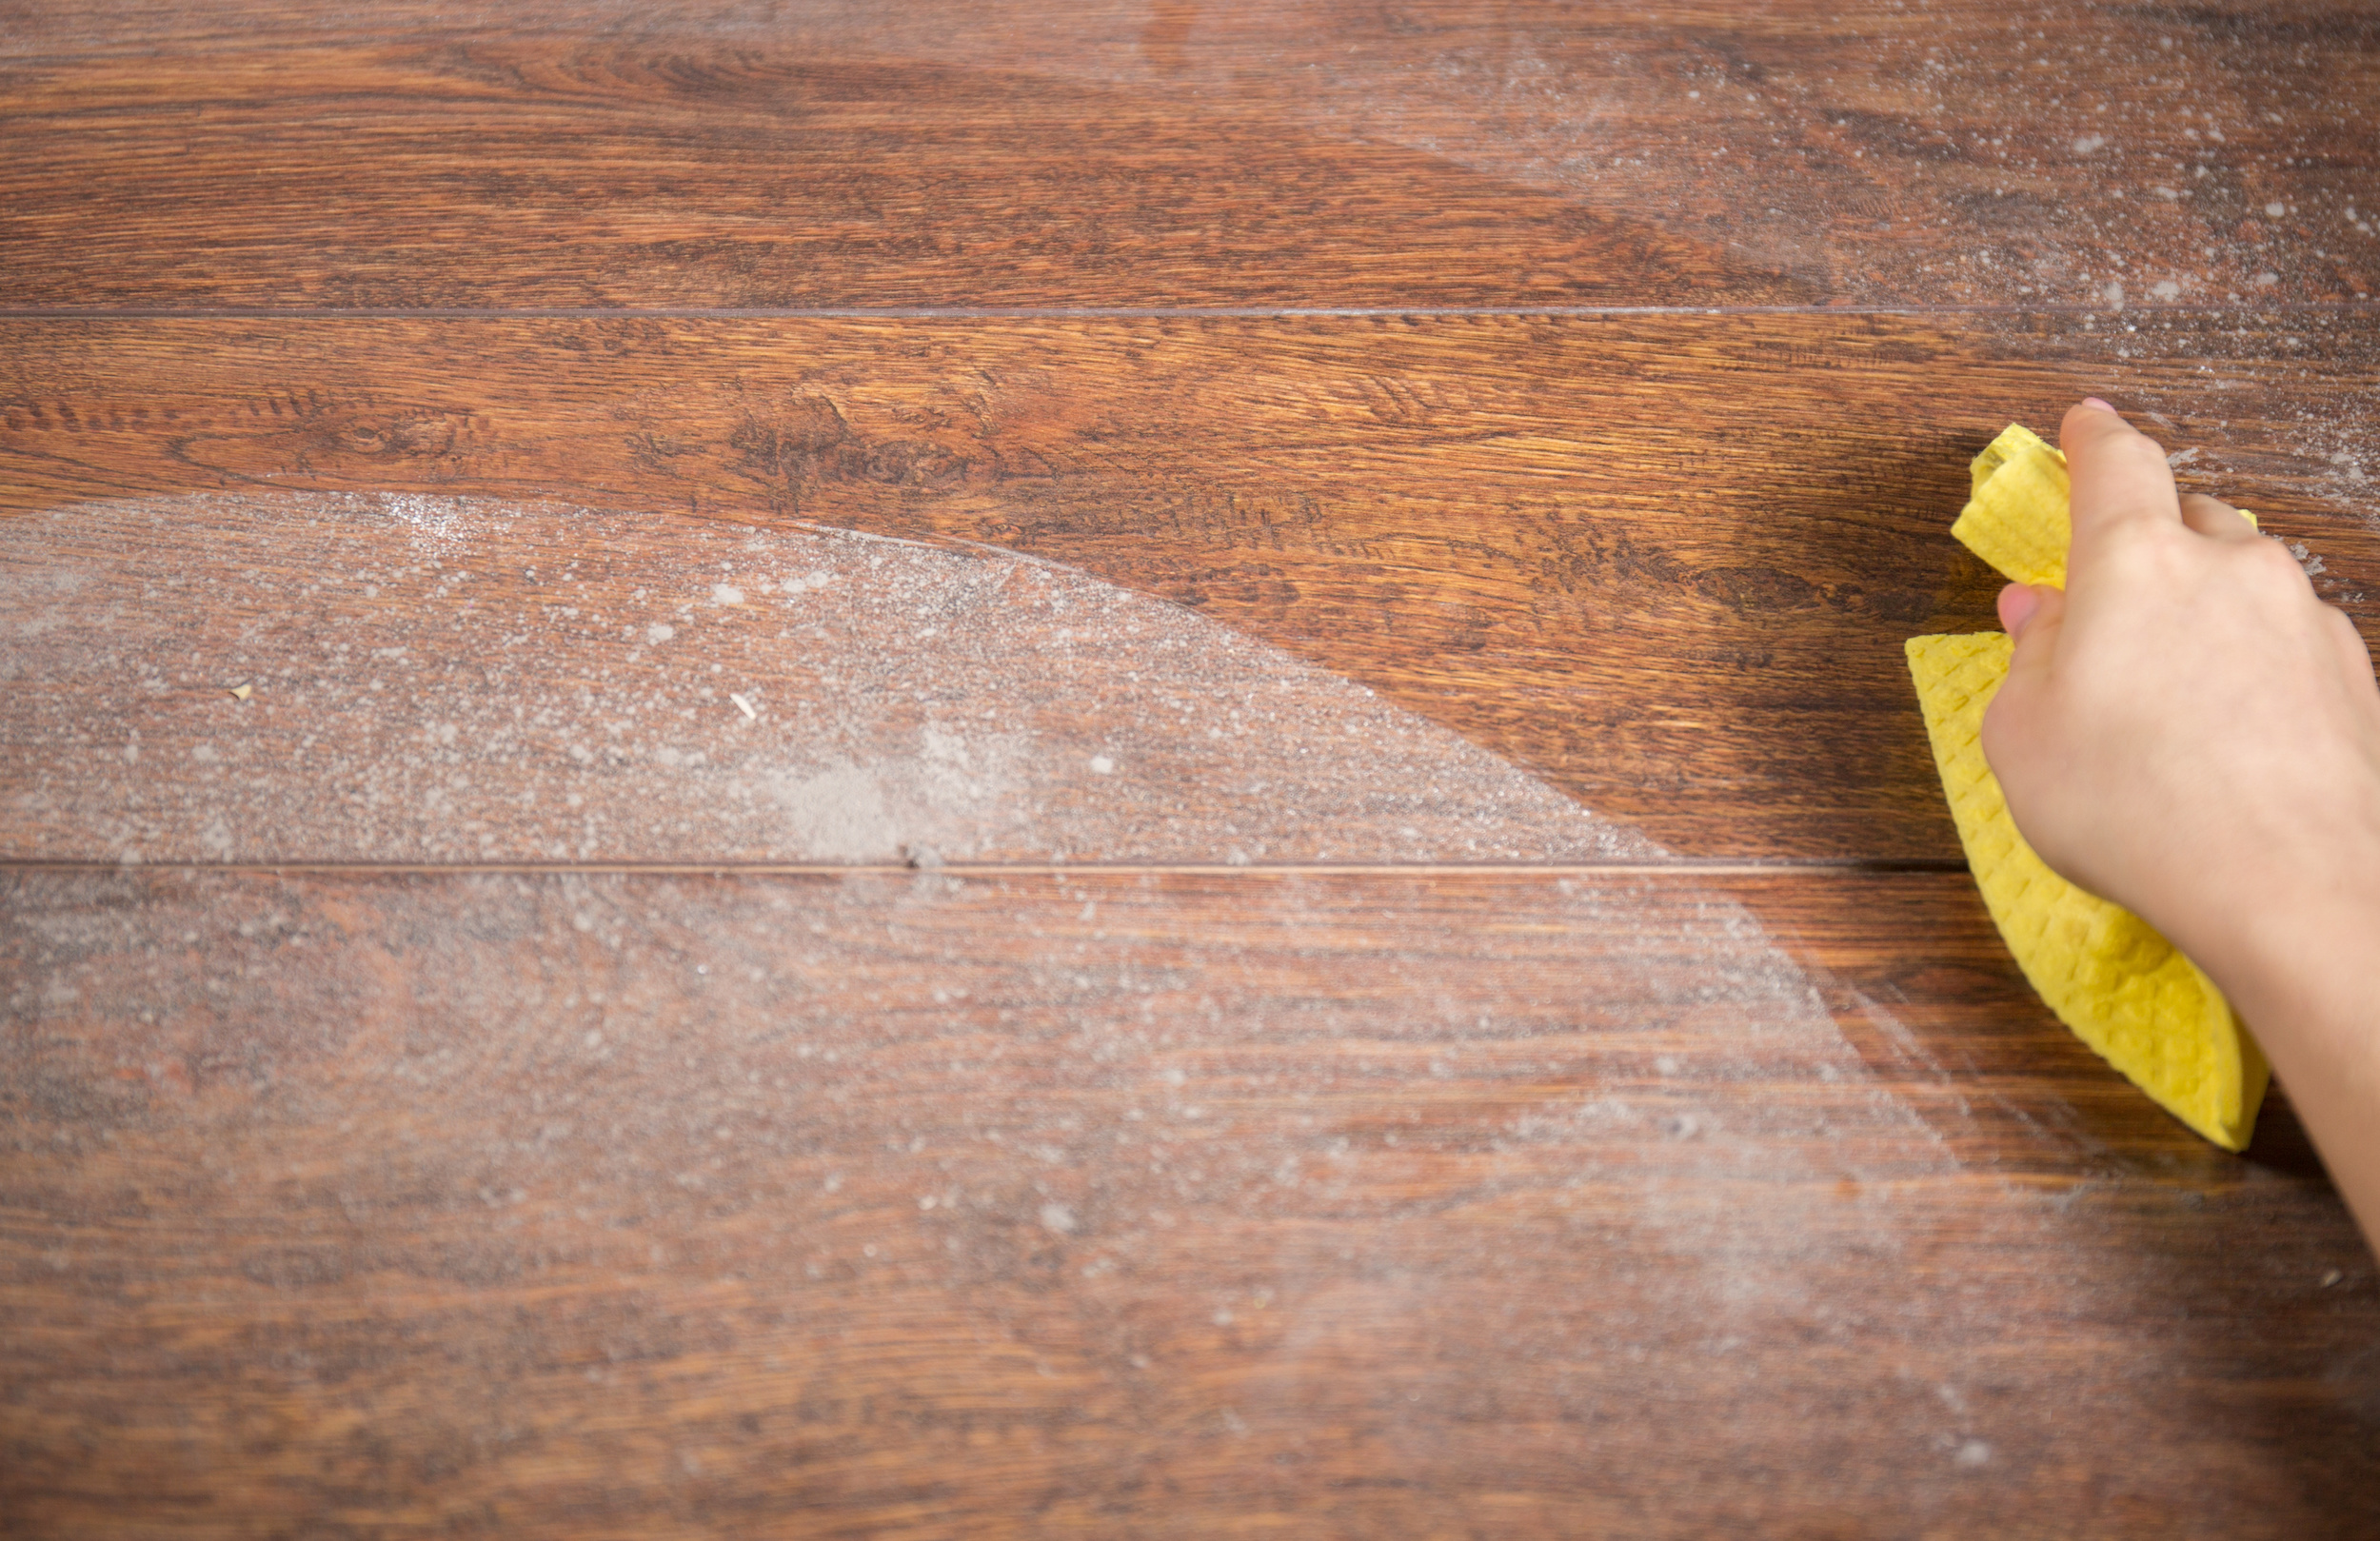 Avoiding Furniture Damage: Cleaners, Stains, and Other Harmful Projects